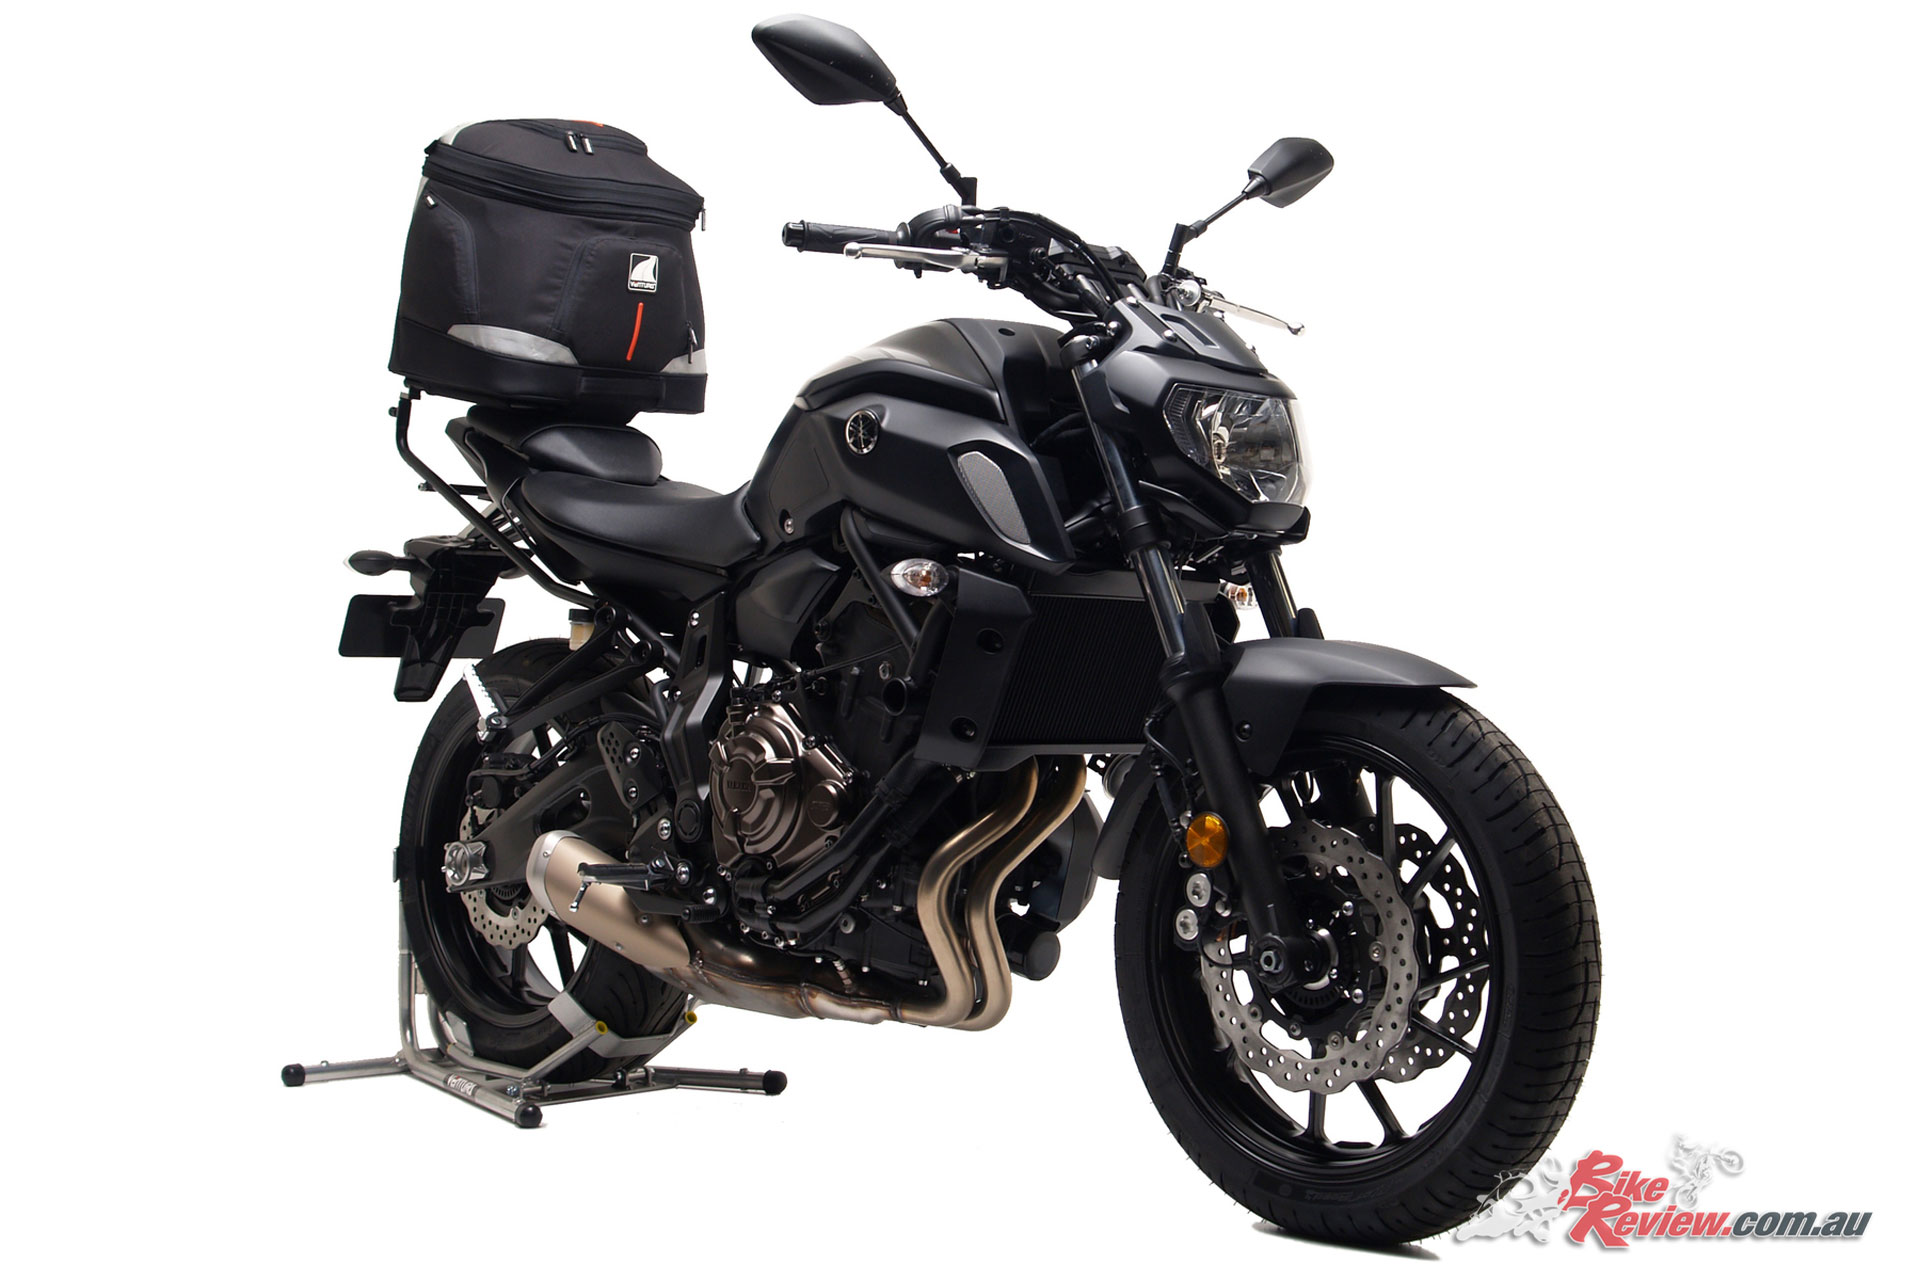 Yamaha's 2018 MT-07 with the EVO-40 larger capacity solution